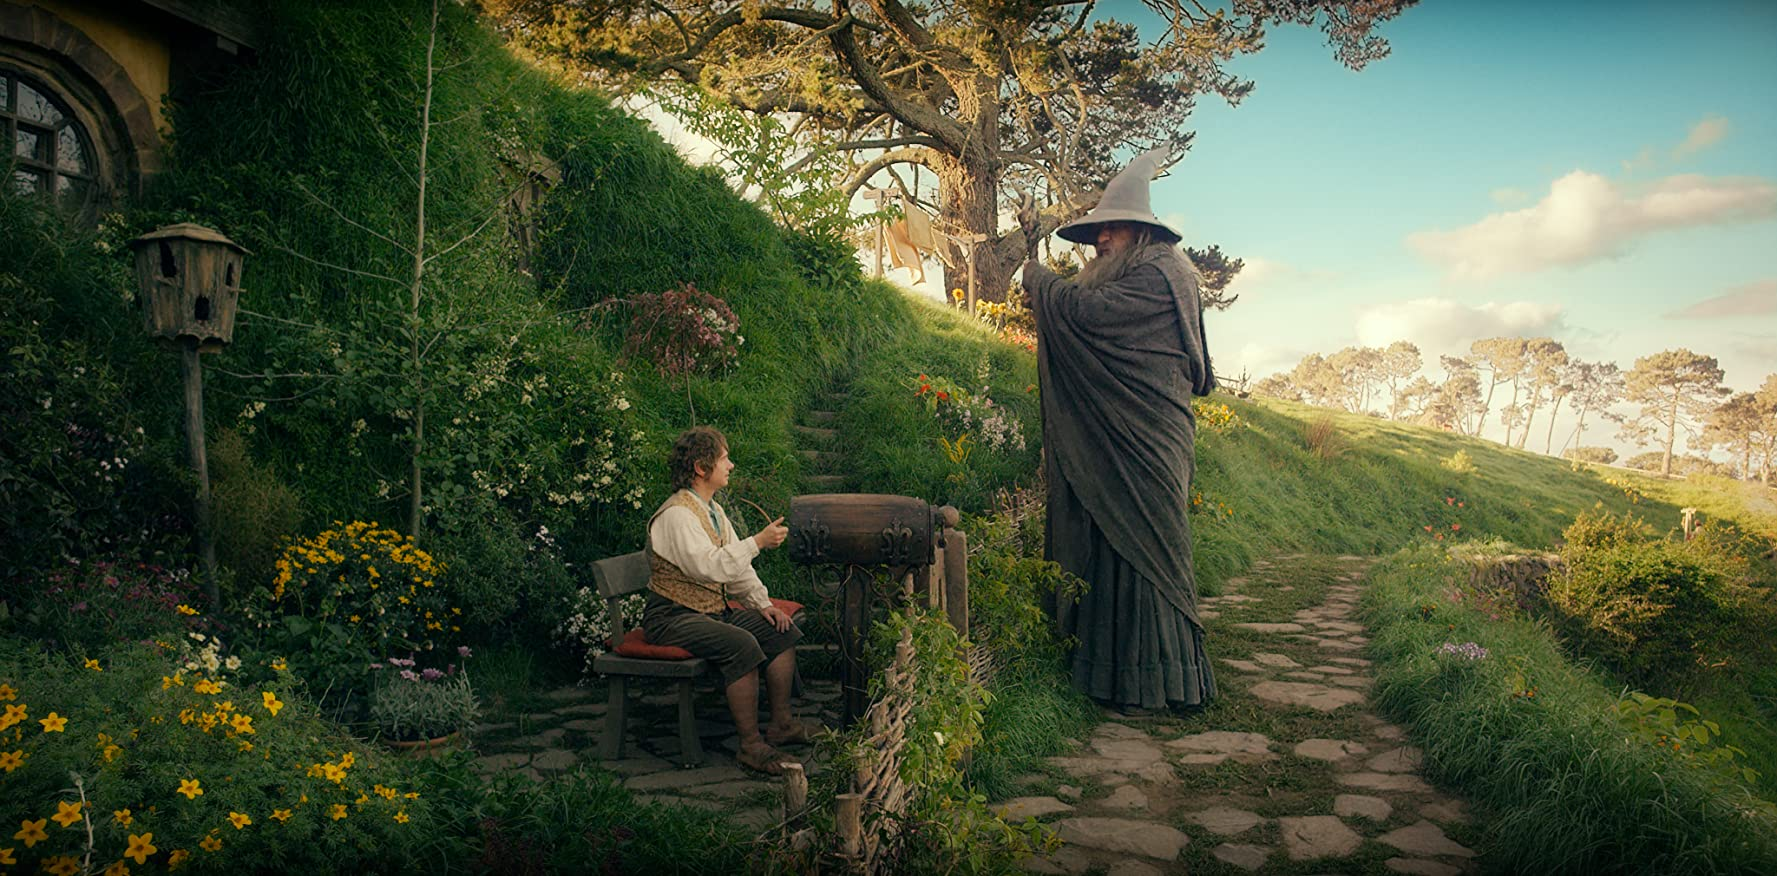 Ian McKellen and Martin Freeman in The Hobbit: An Unexpected Journey (2012)